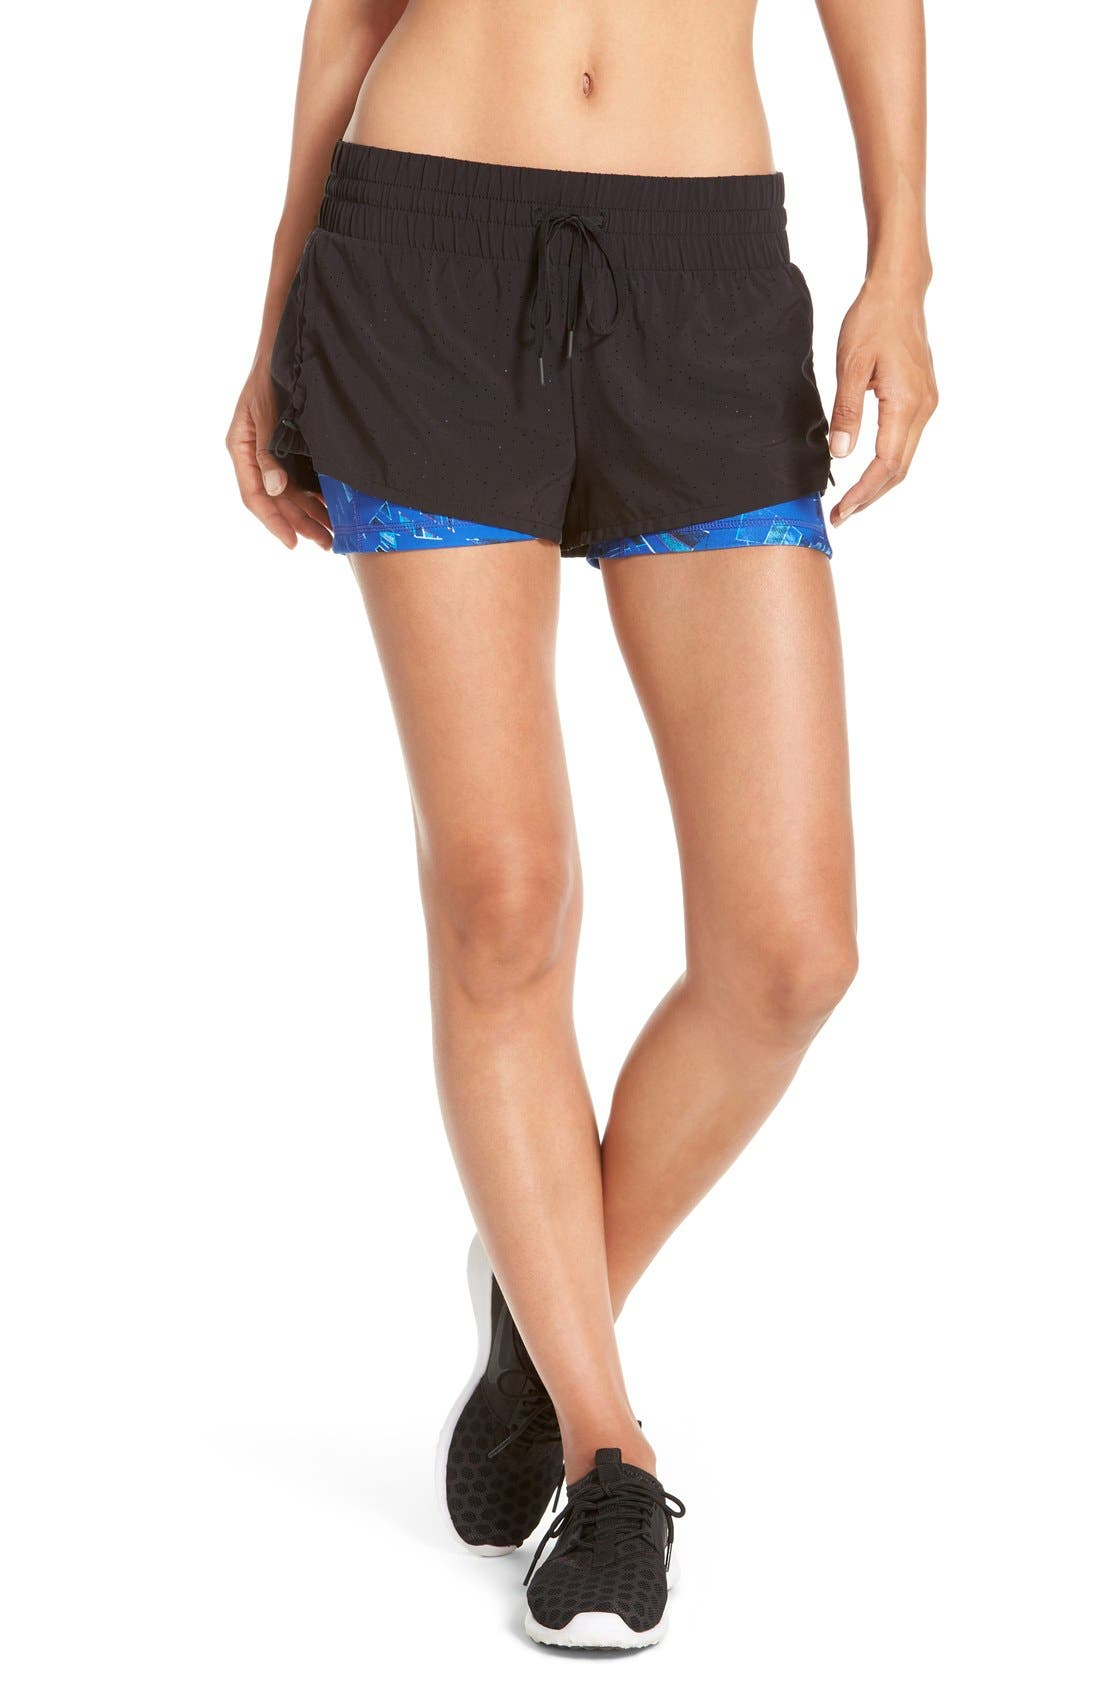 Alternate Image 1 Selected - Zella 'Twice as Nice' Layered Shorts